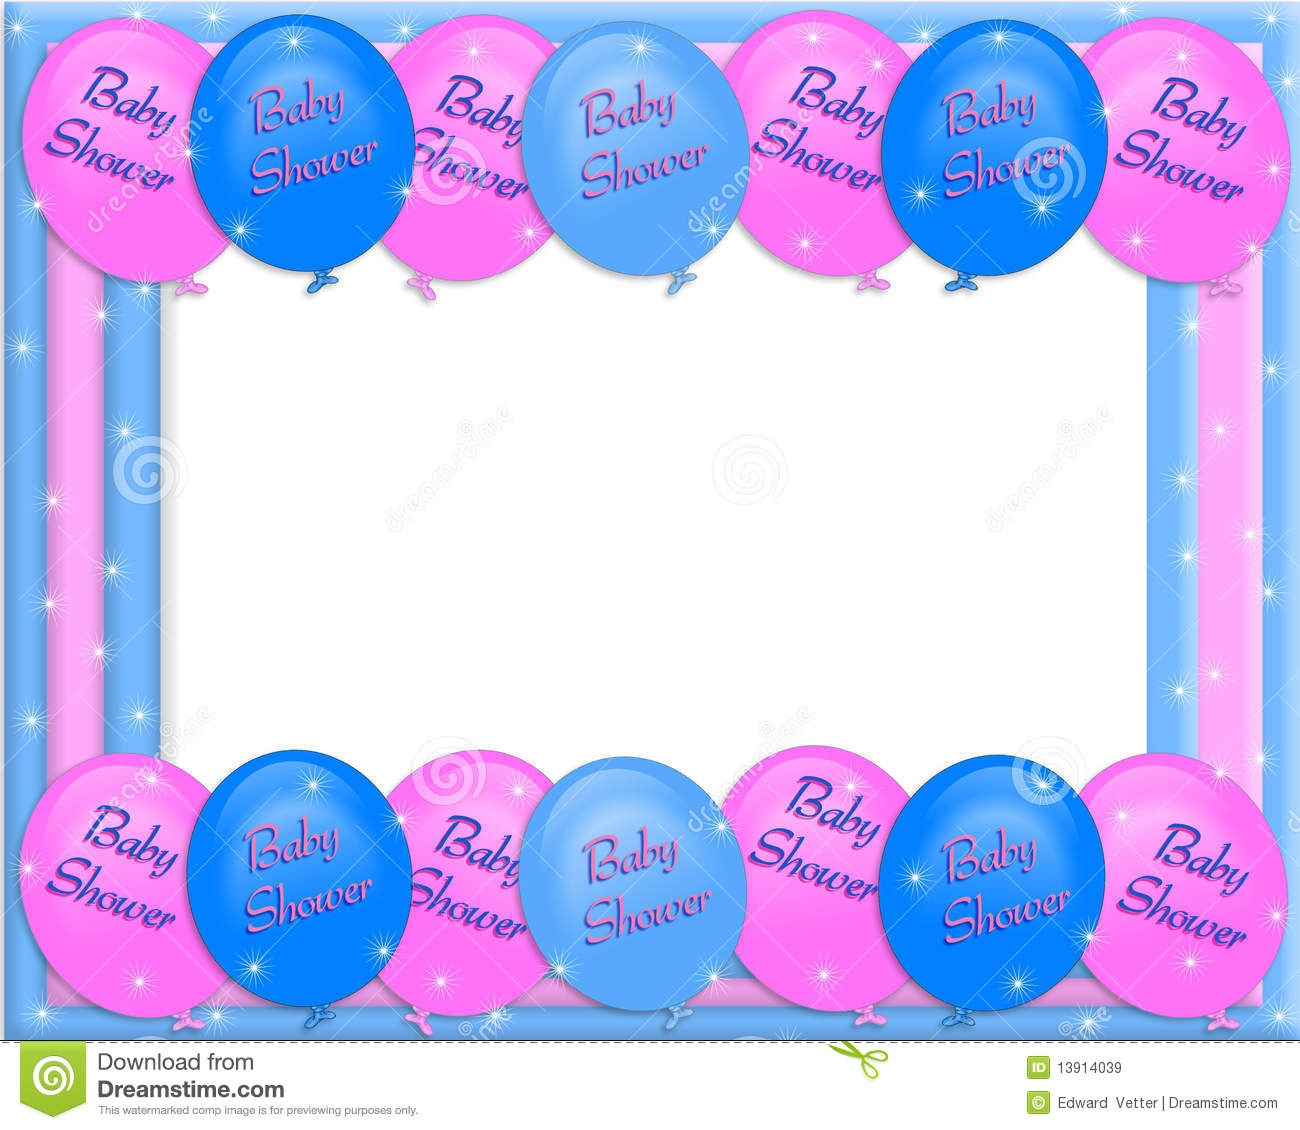 Free Clip Art Borders For Baby .-Free Clip Art Borders For Baby .-14